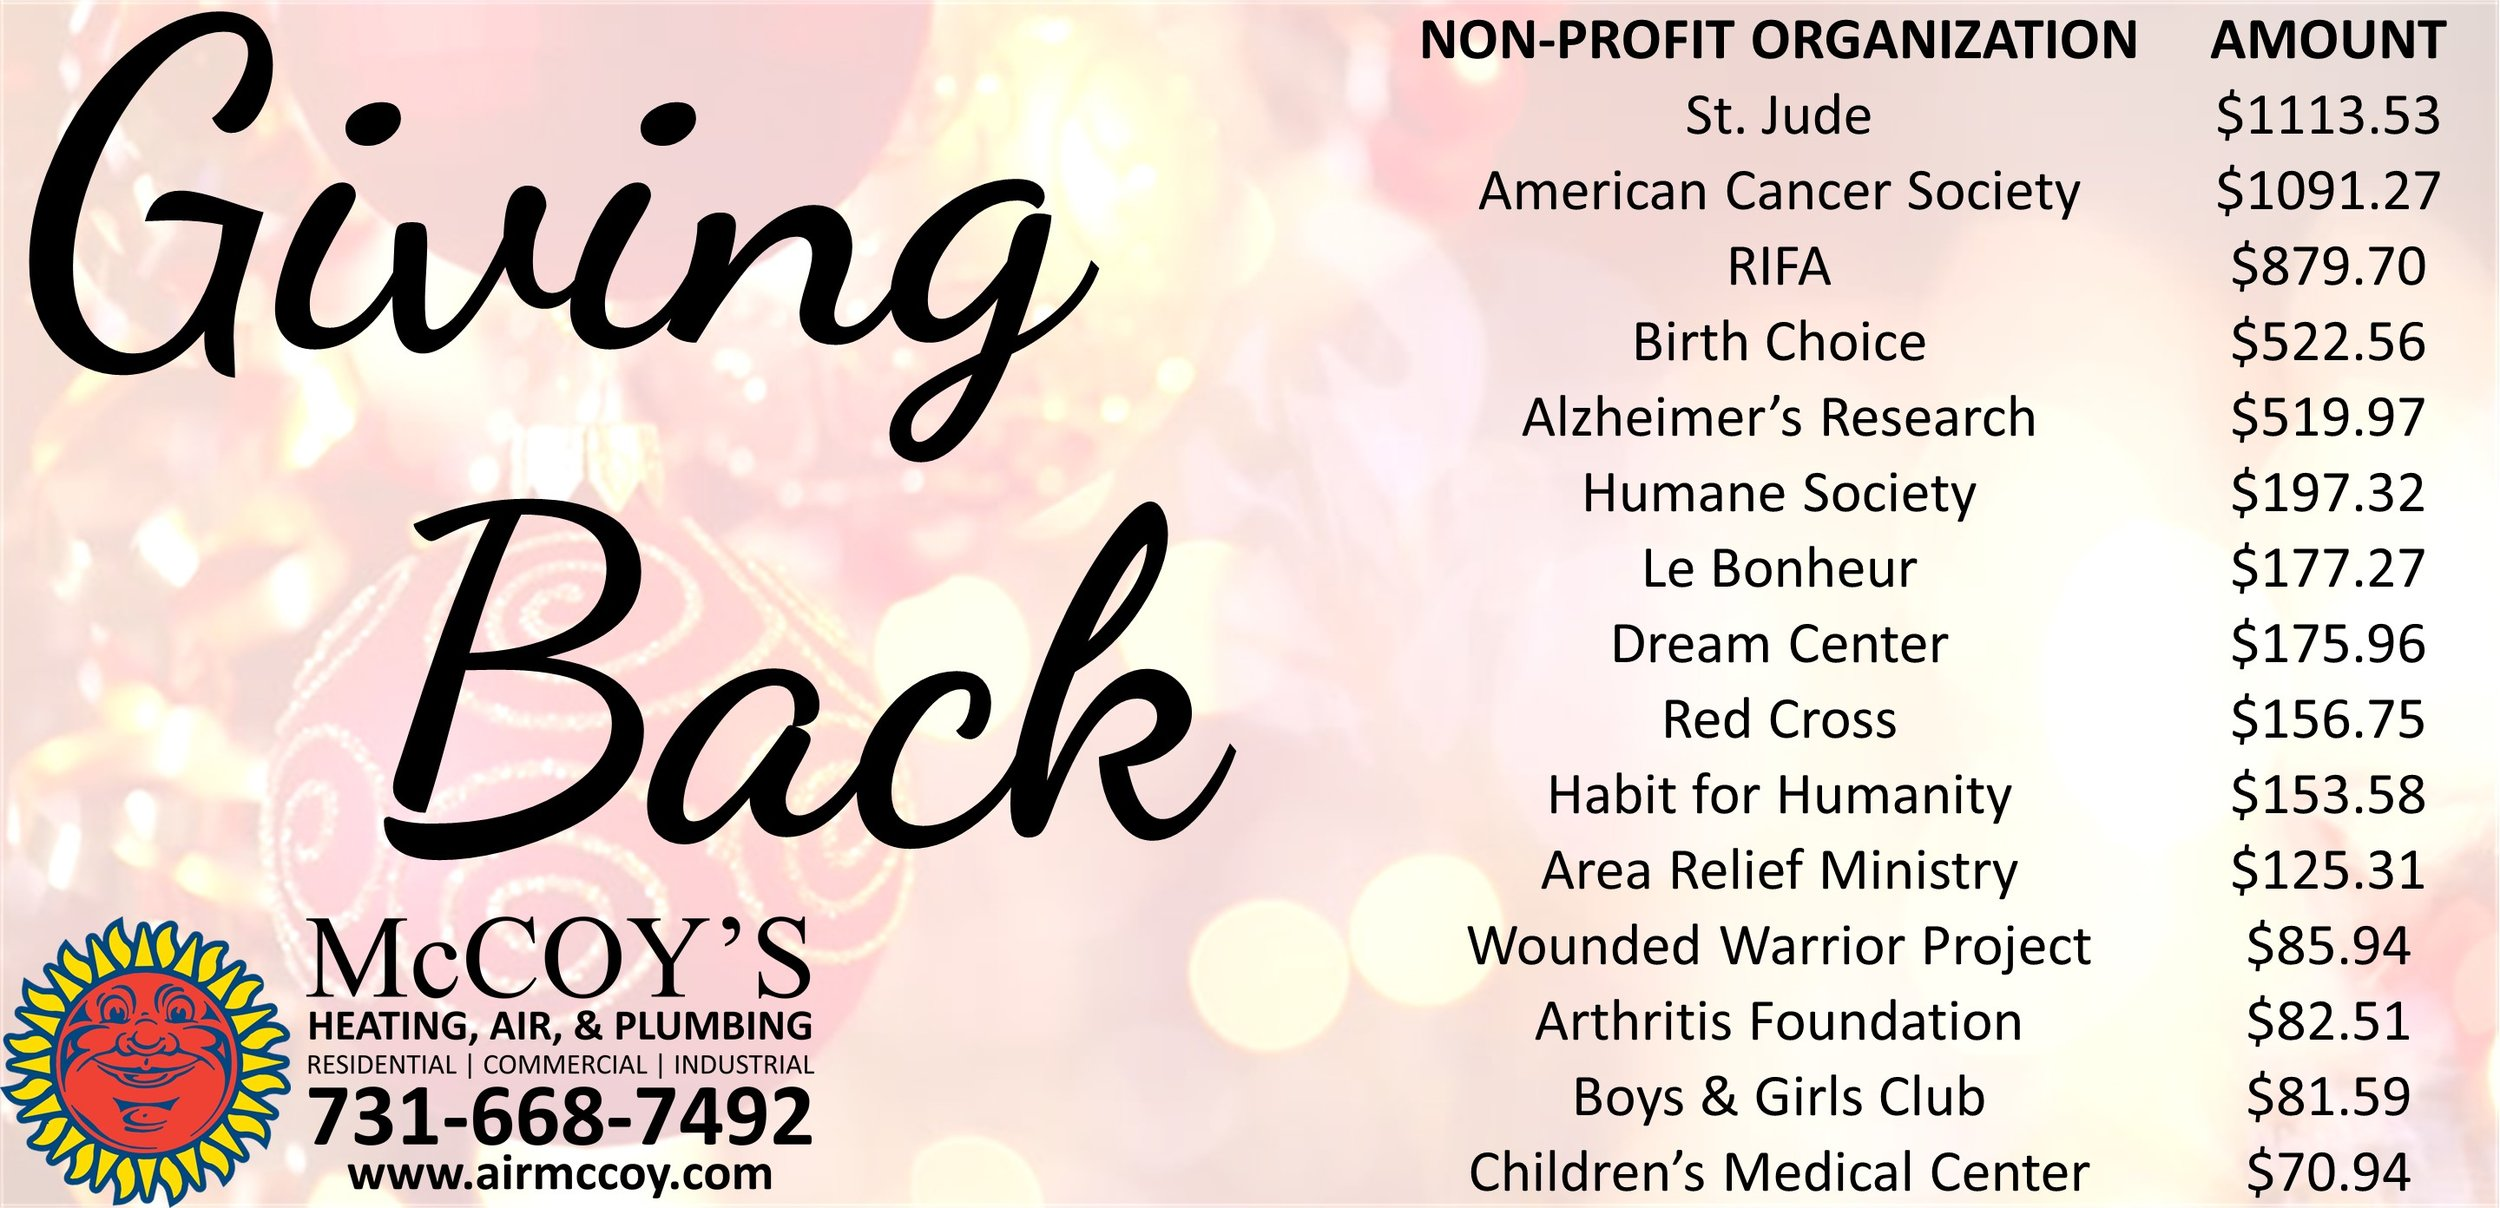 January 1, 2016 - November 30, 3016 Non-Profit Charities Amount